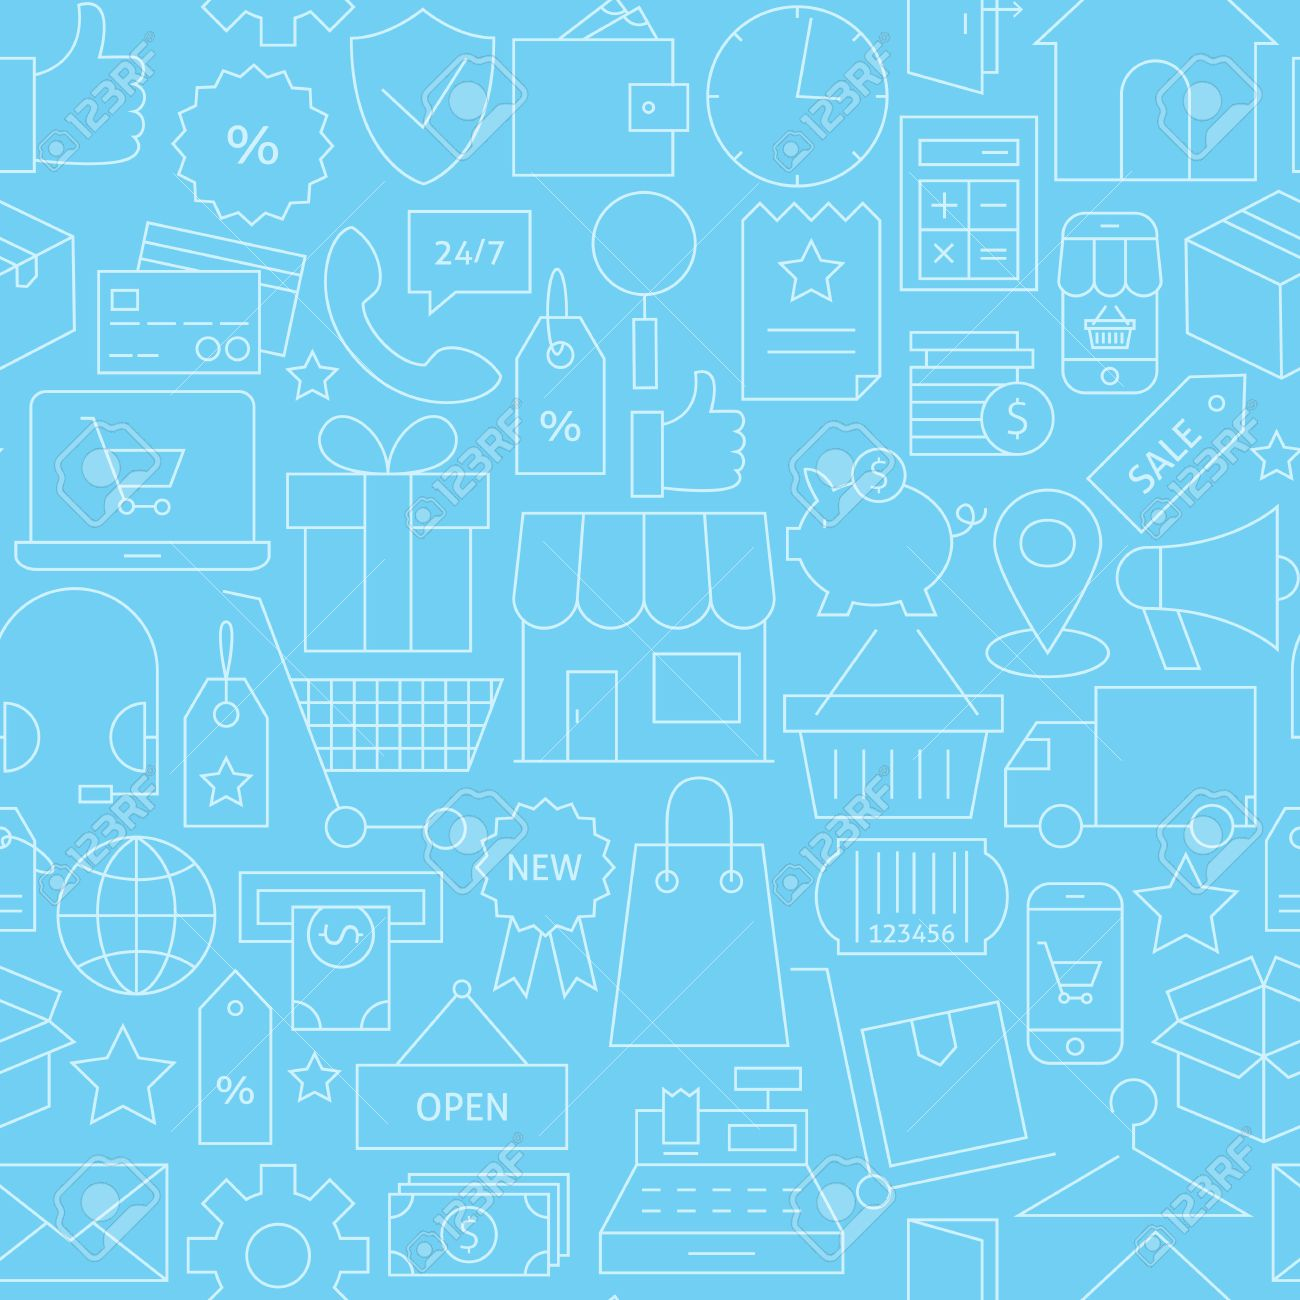 Thin Line Retail E Commerce Online Business Seamless Blue Pattern Royalty Free Cliparts Vectors And Stock Illustration Image 46604184